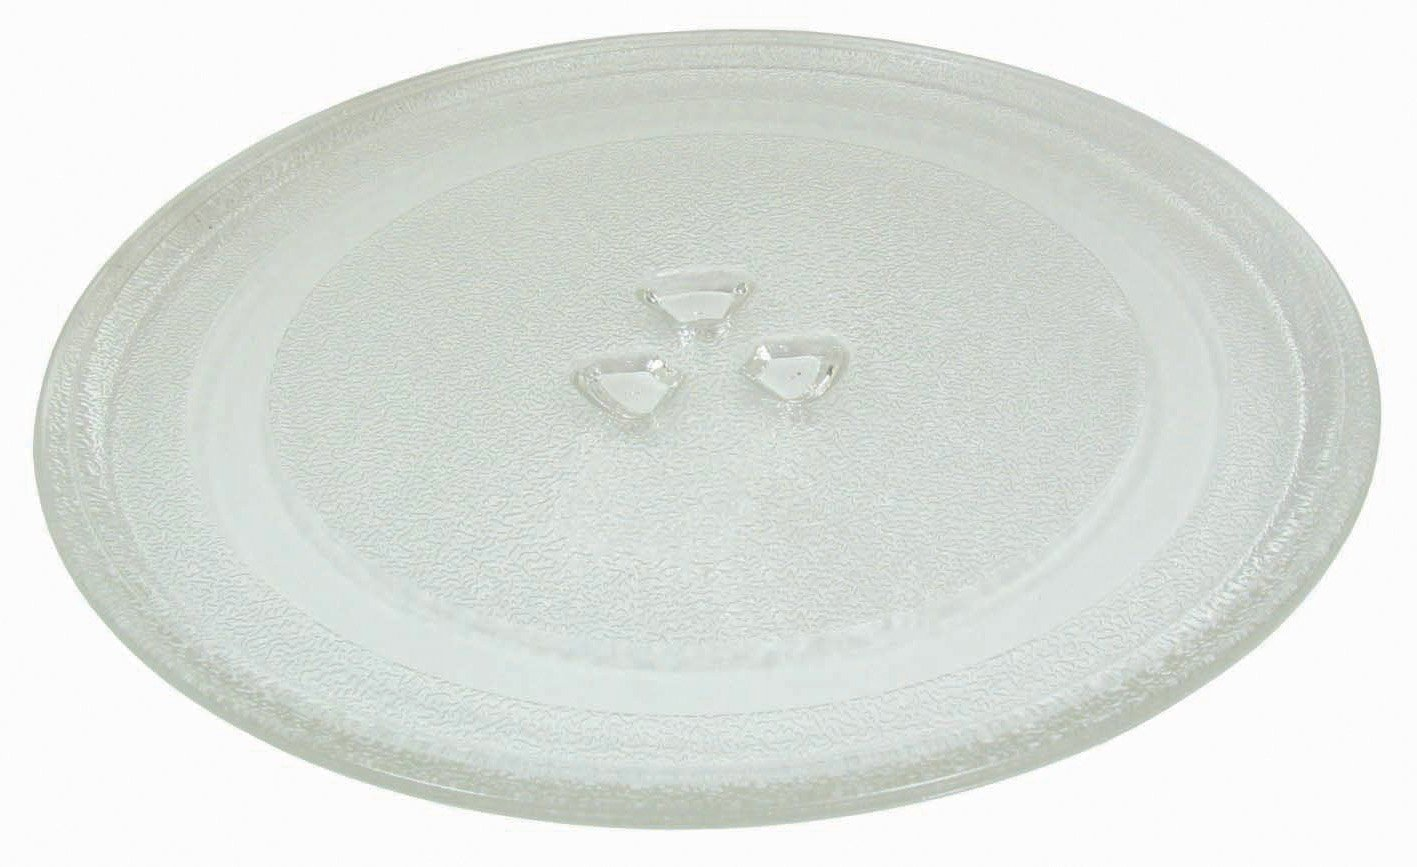 Small 9.6''/24.5cm Microwave Glass Plate/Microwave Glass Turntable Plate Replacement - For Small Microwaves by Impresa Products (Image #1)